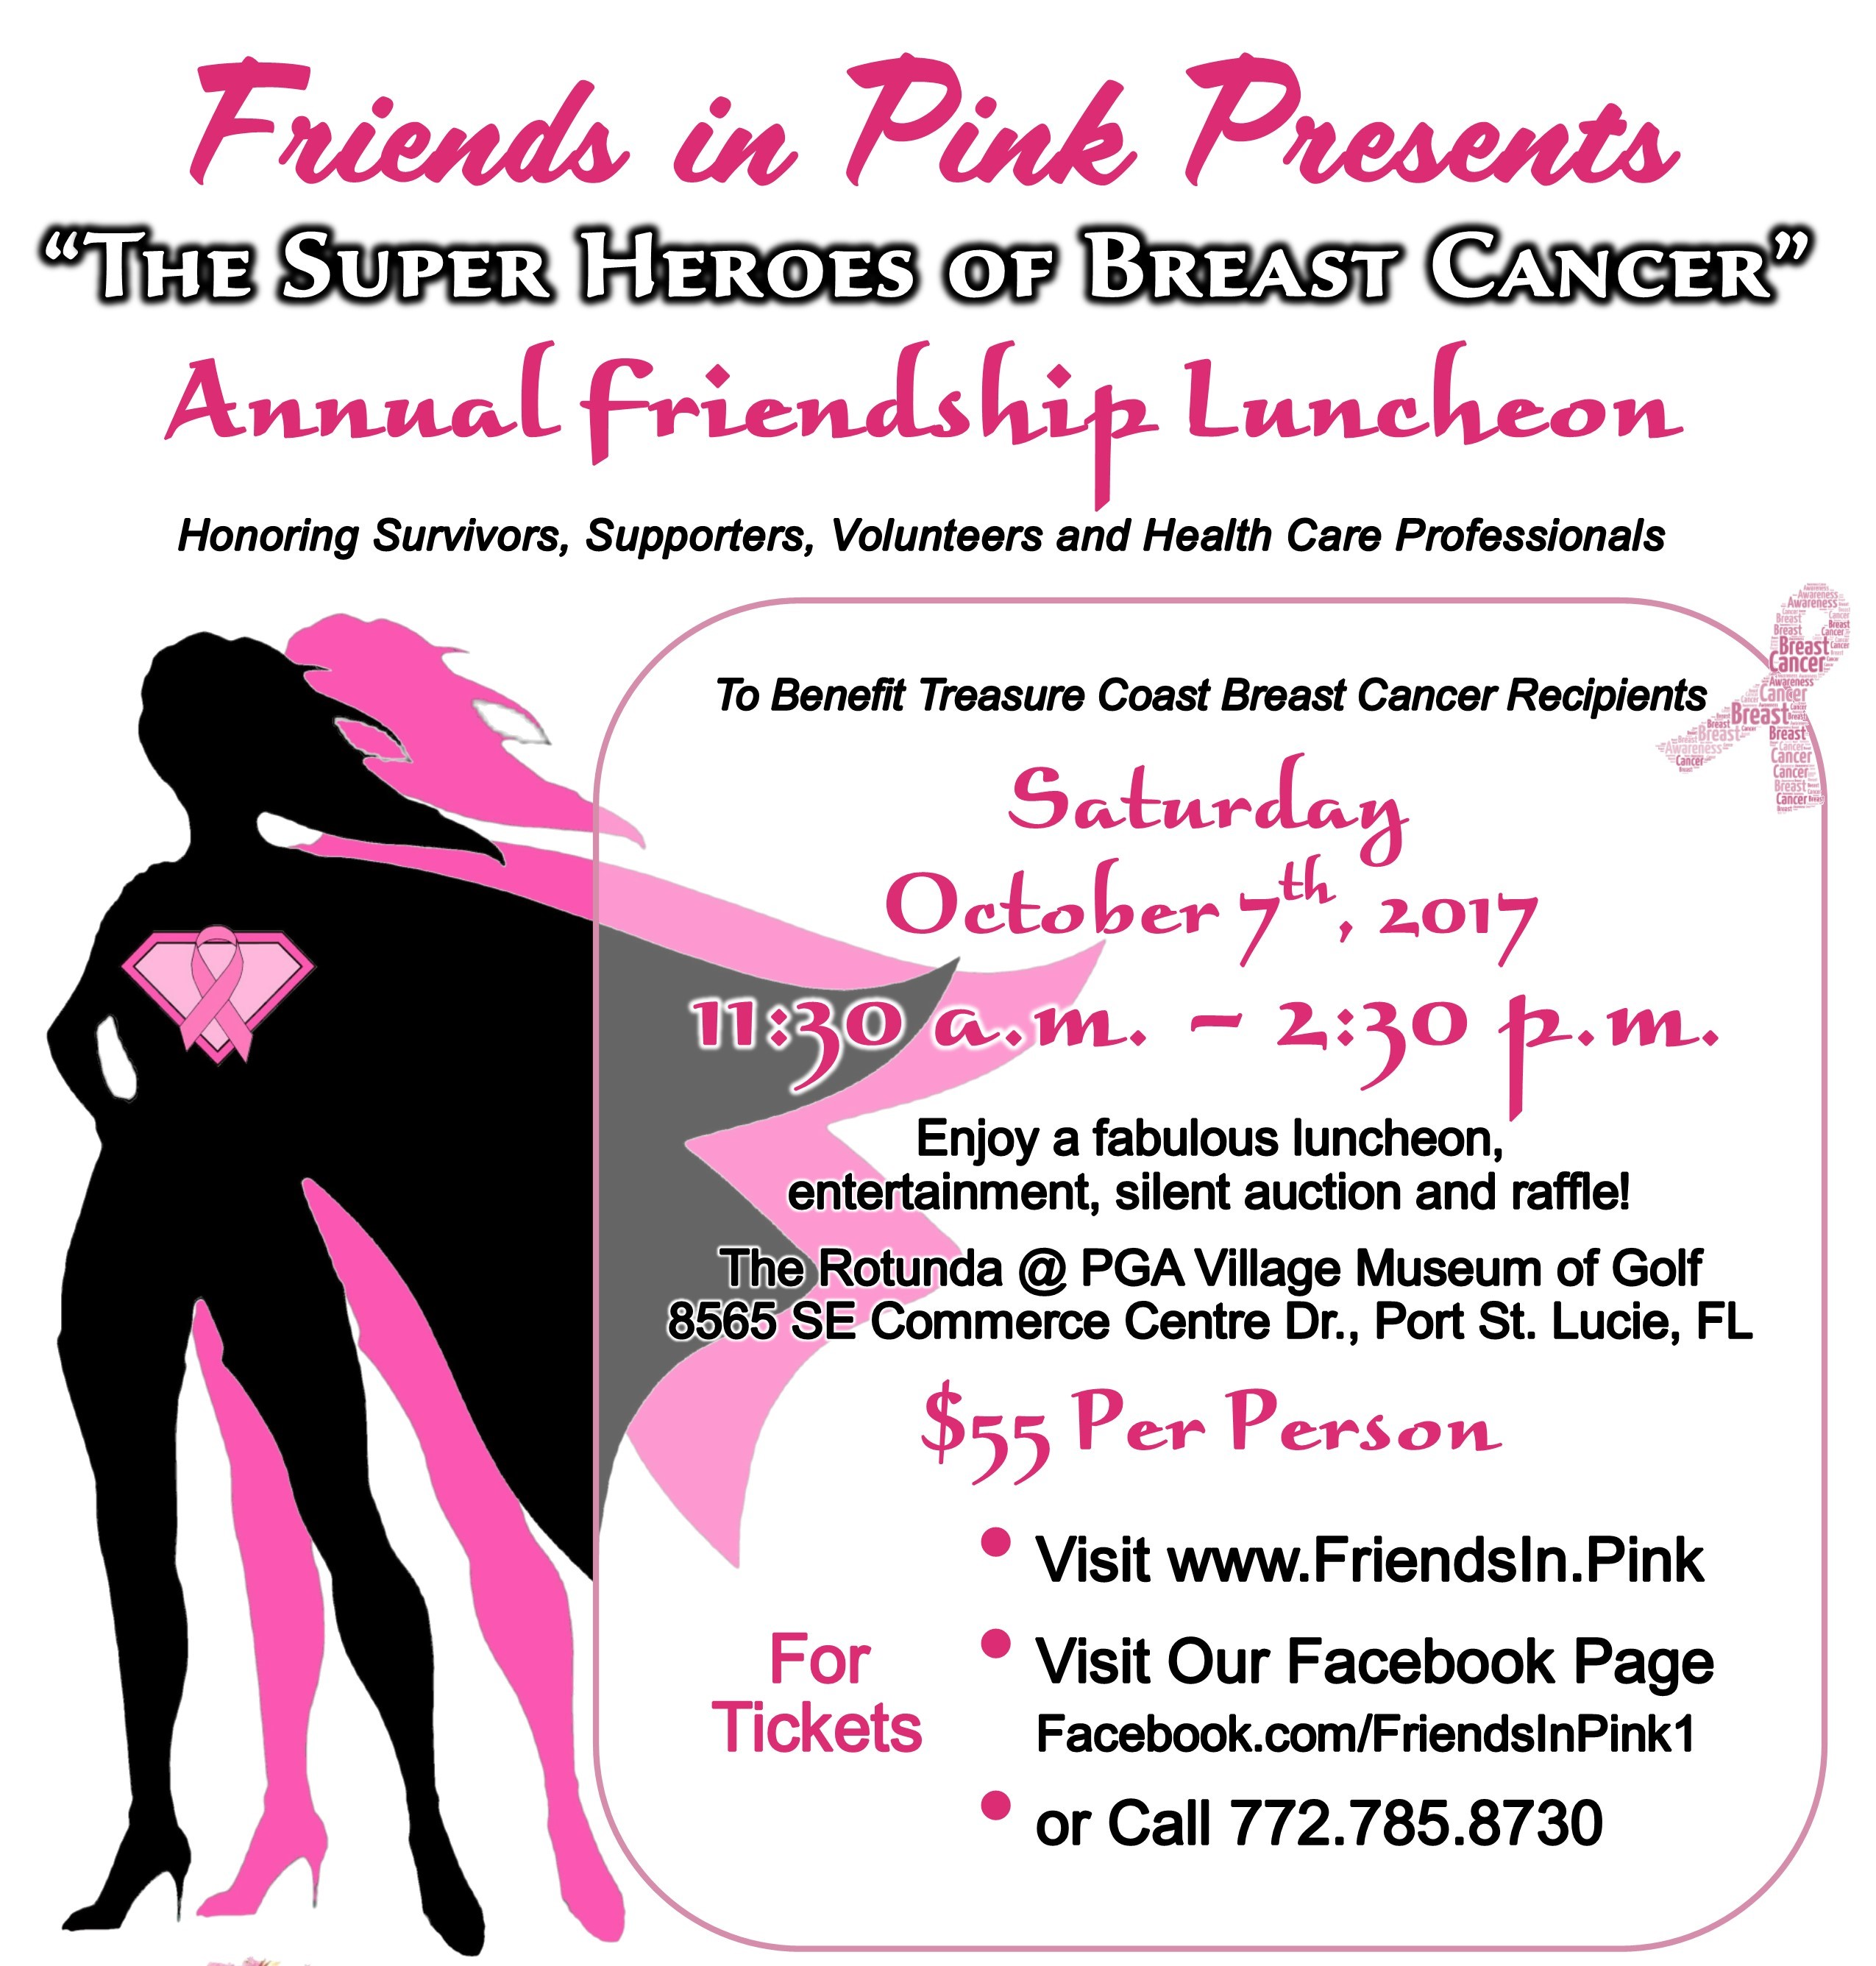 2017-Friendship-Luncheon-Flyer.jpg